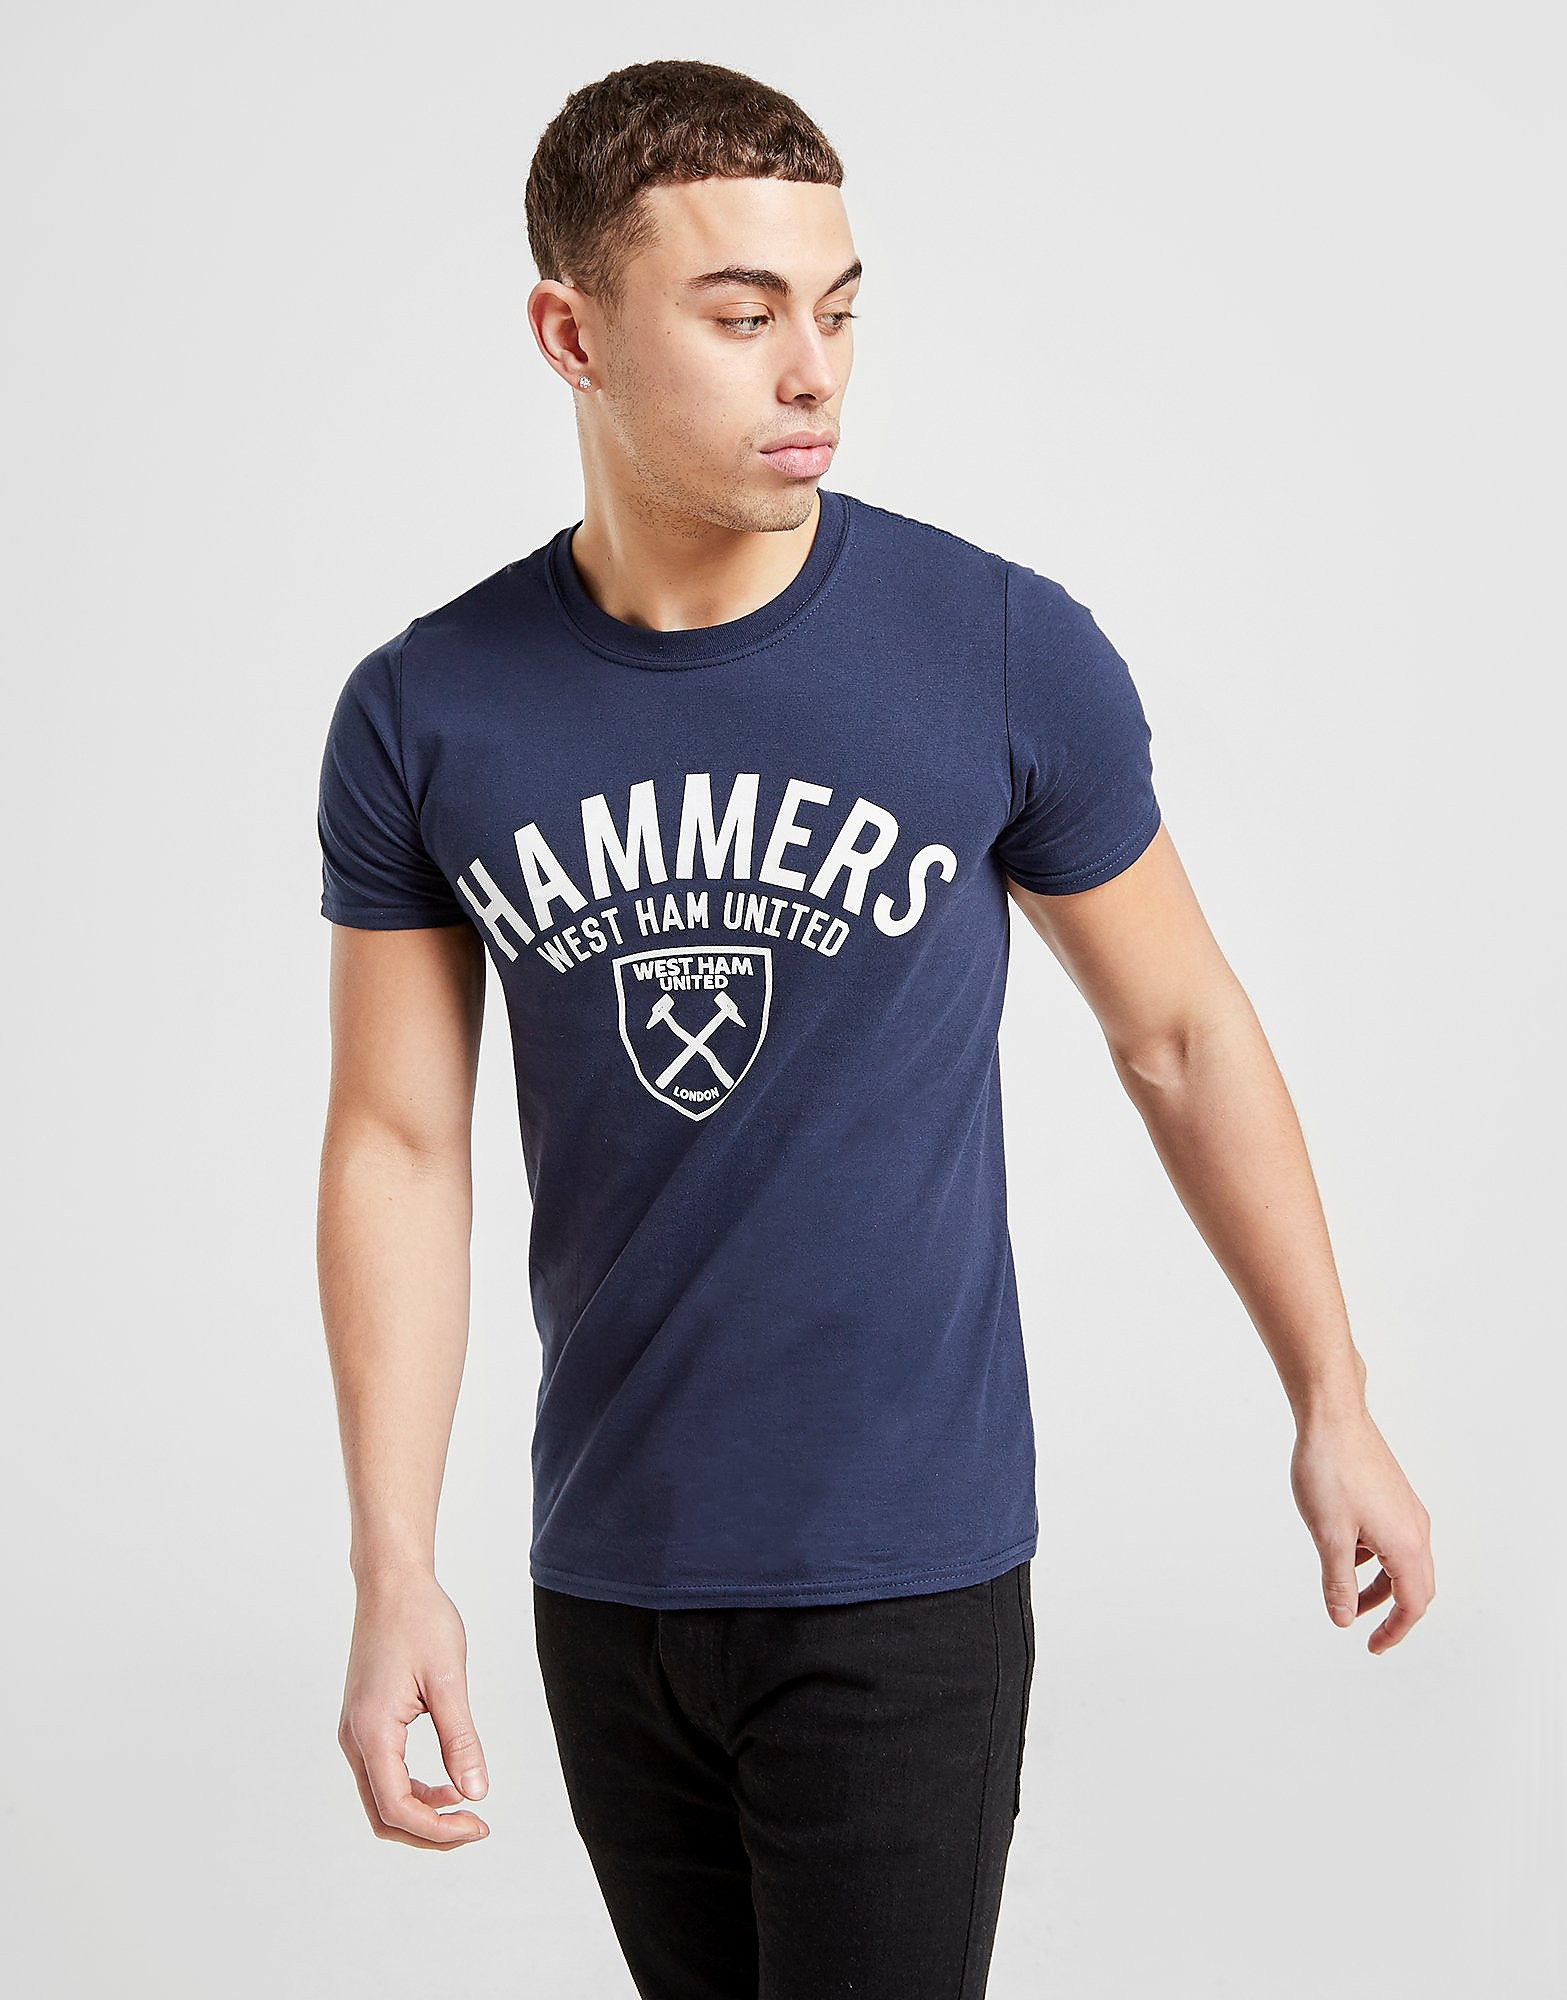 Official Team West Ham United Hammers T-Shirt